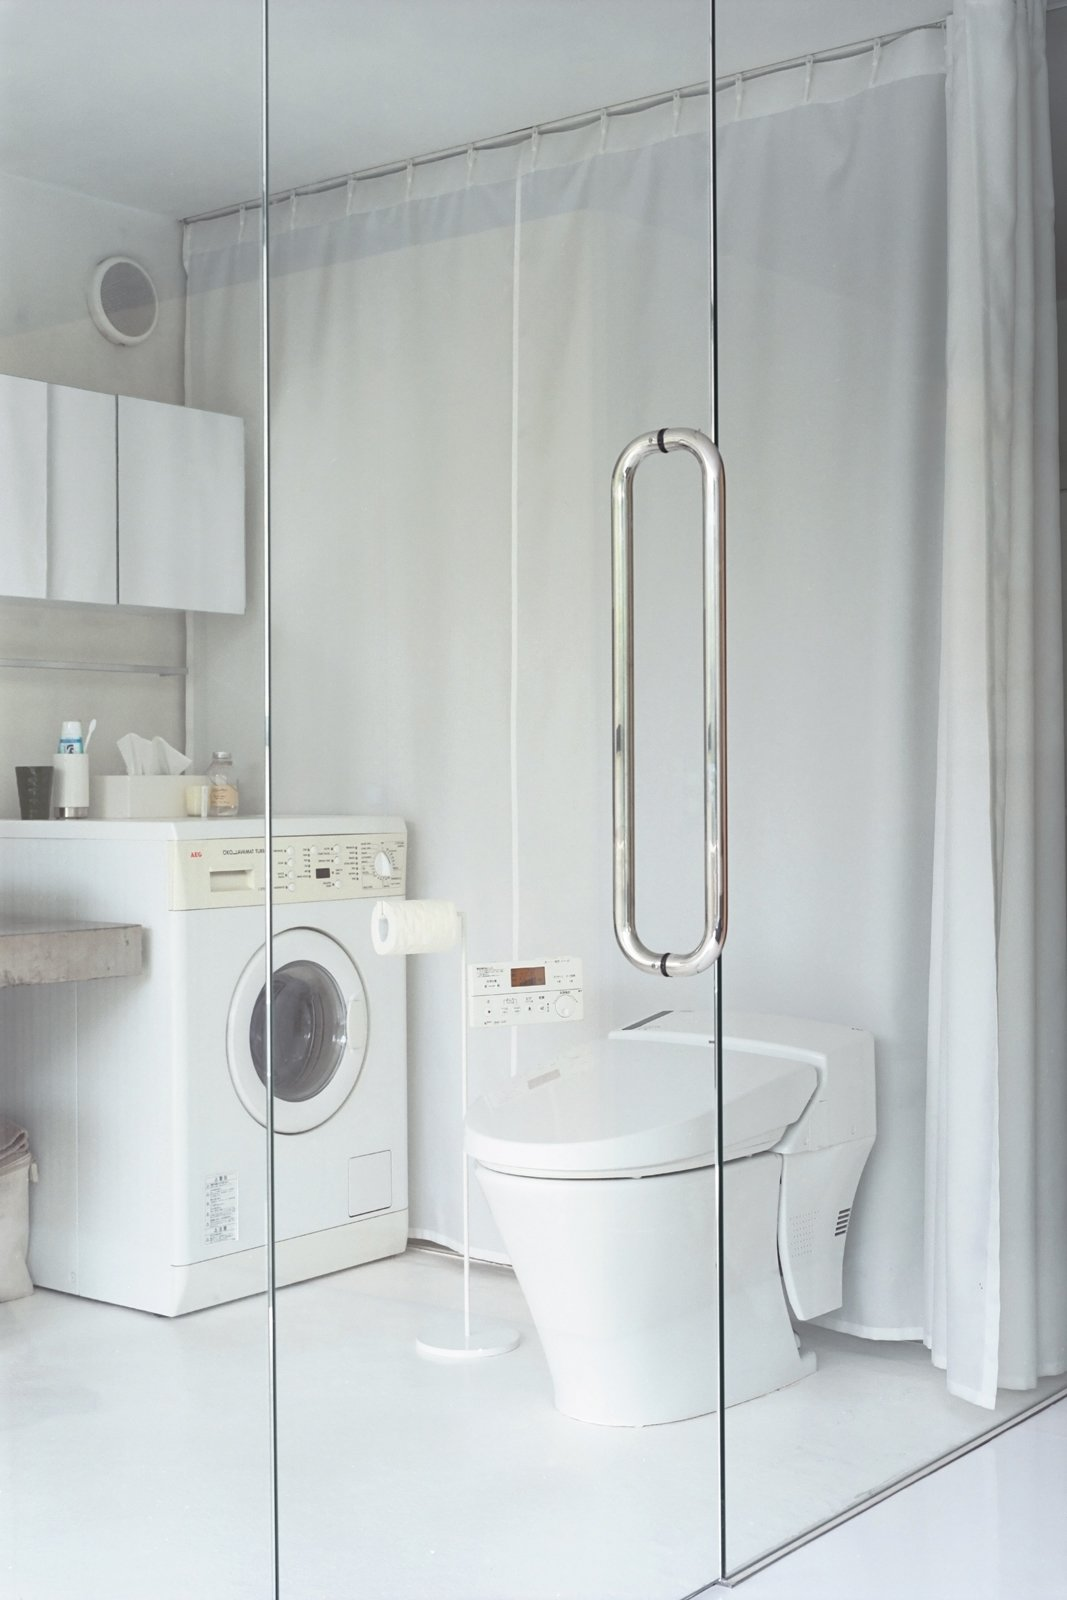 Laundry The bedroom and bath share a glass wall.  Best Laundry Photos from Small Space Live/Work Box Home in Japan